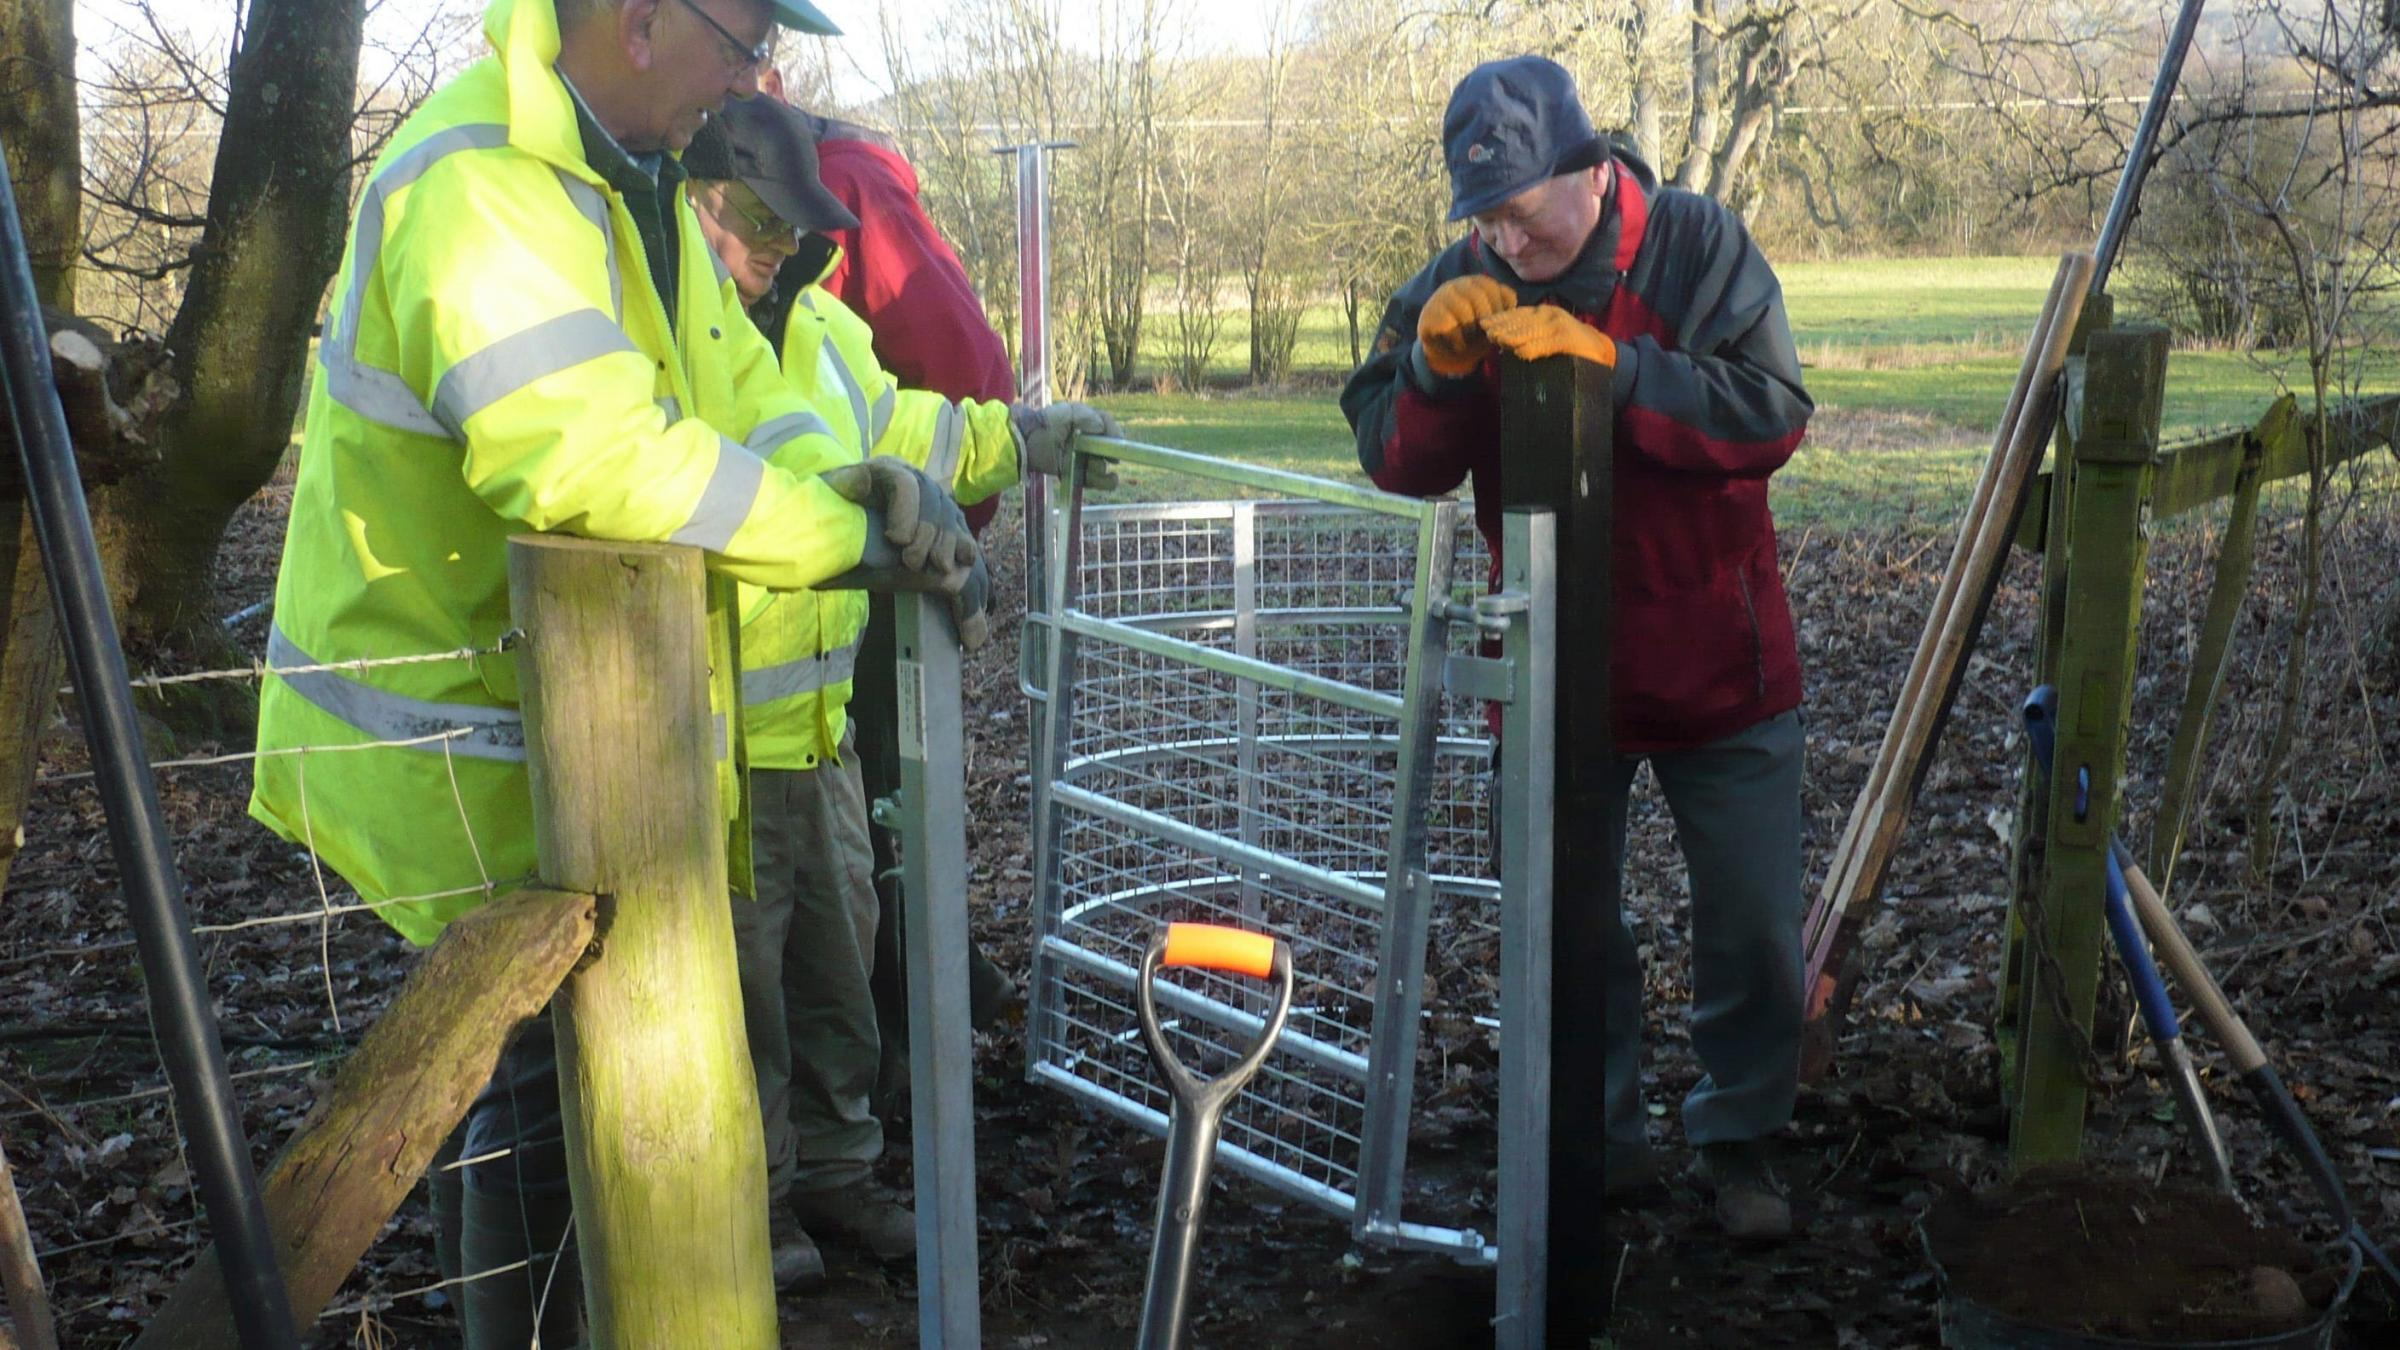 Members of the Ludlow Parish Path Partnership Group working hard to maintain the local footpaths